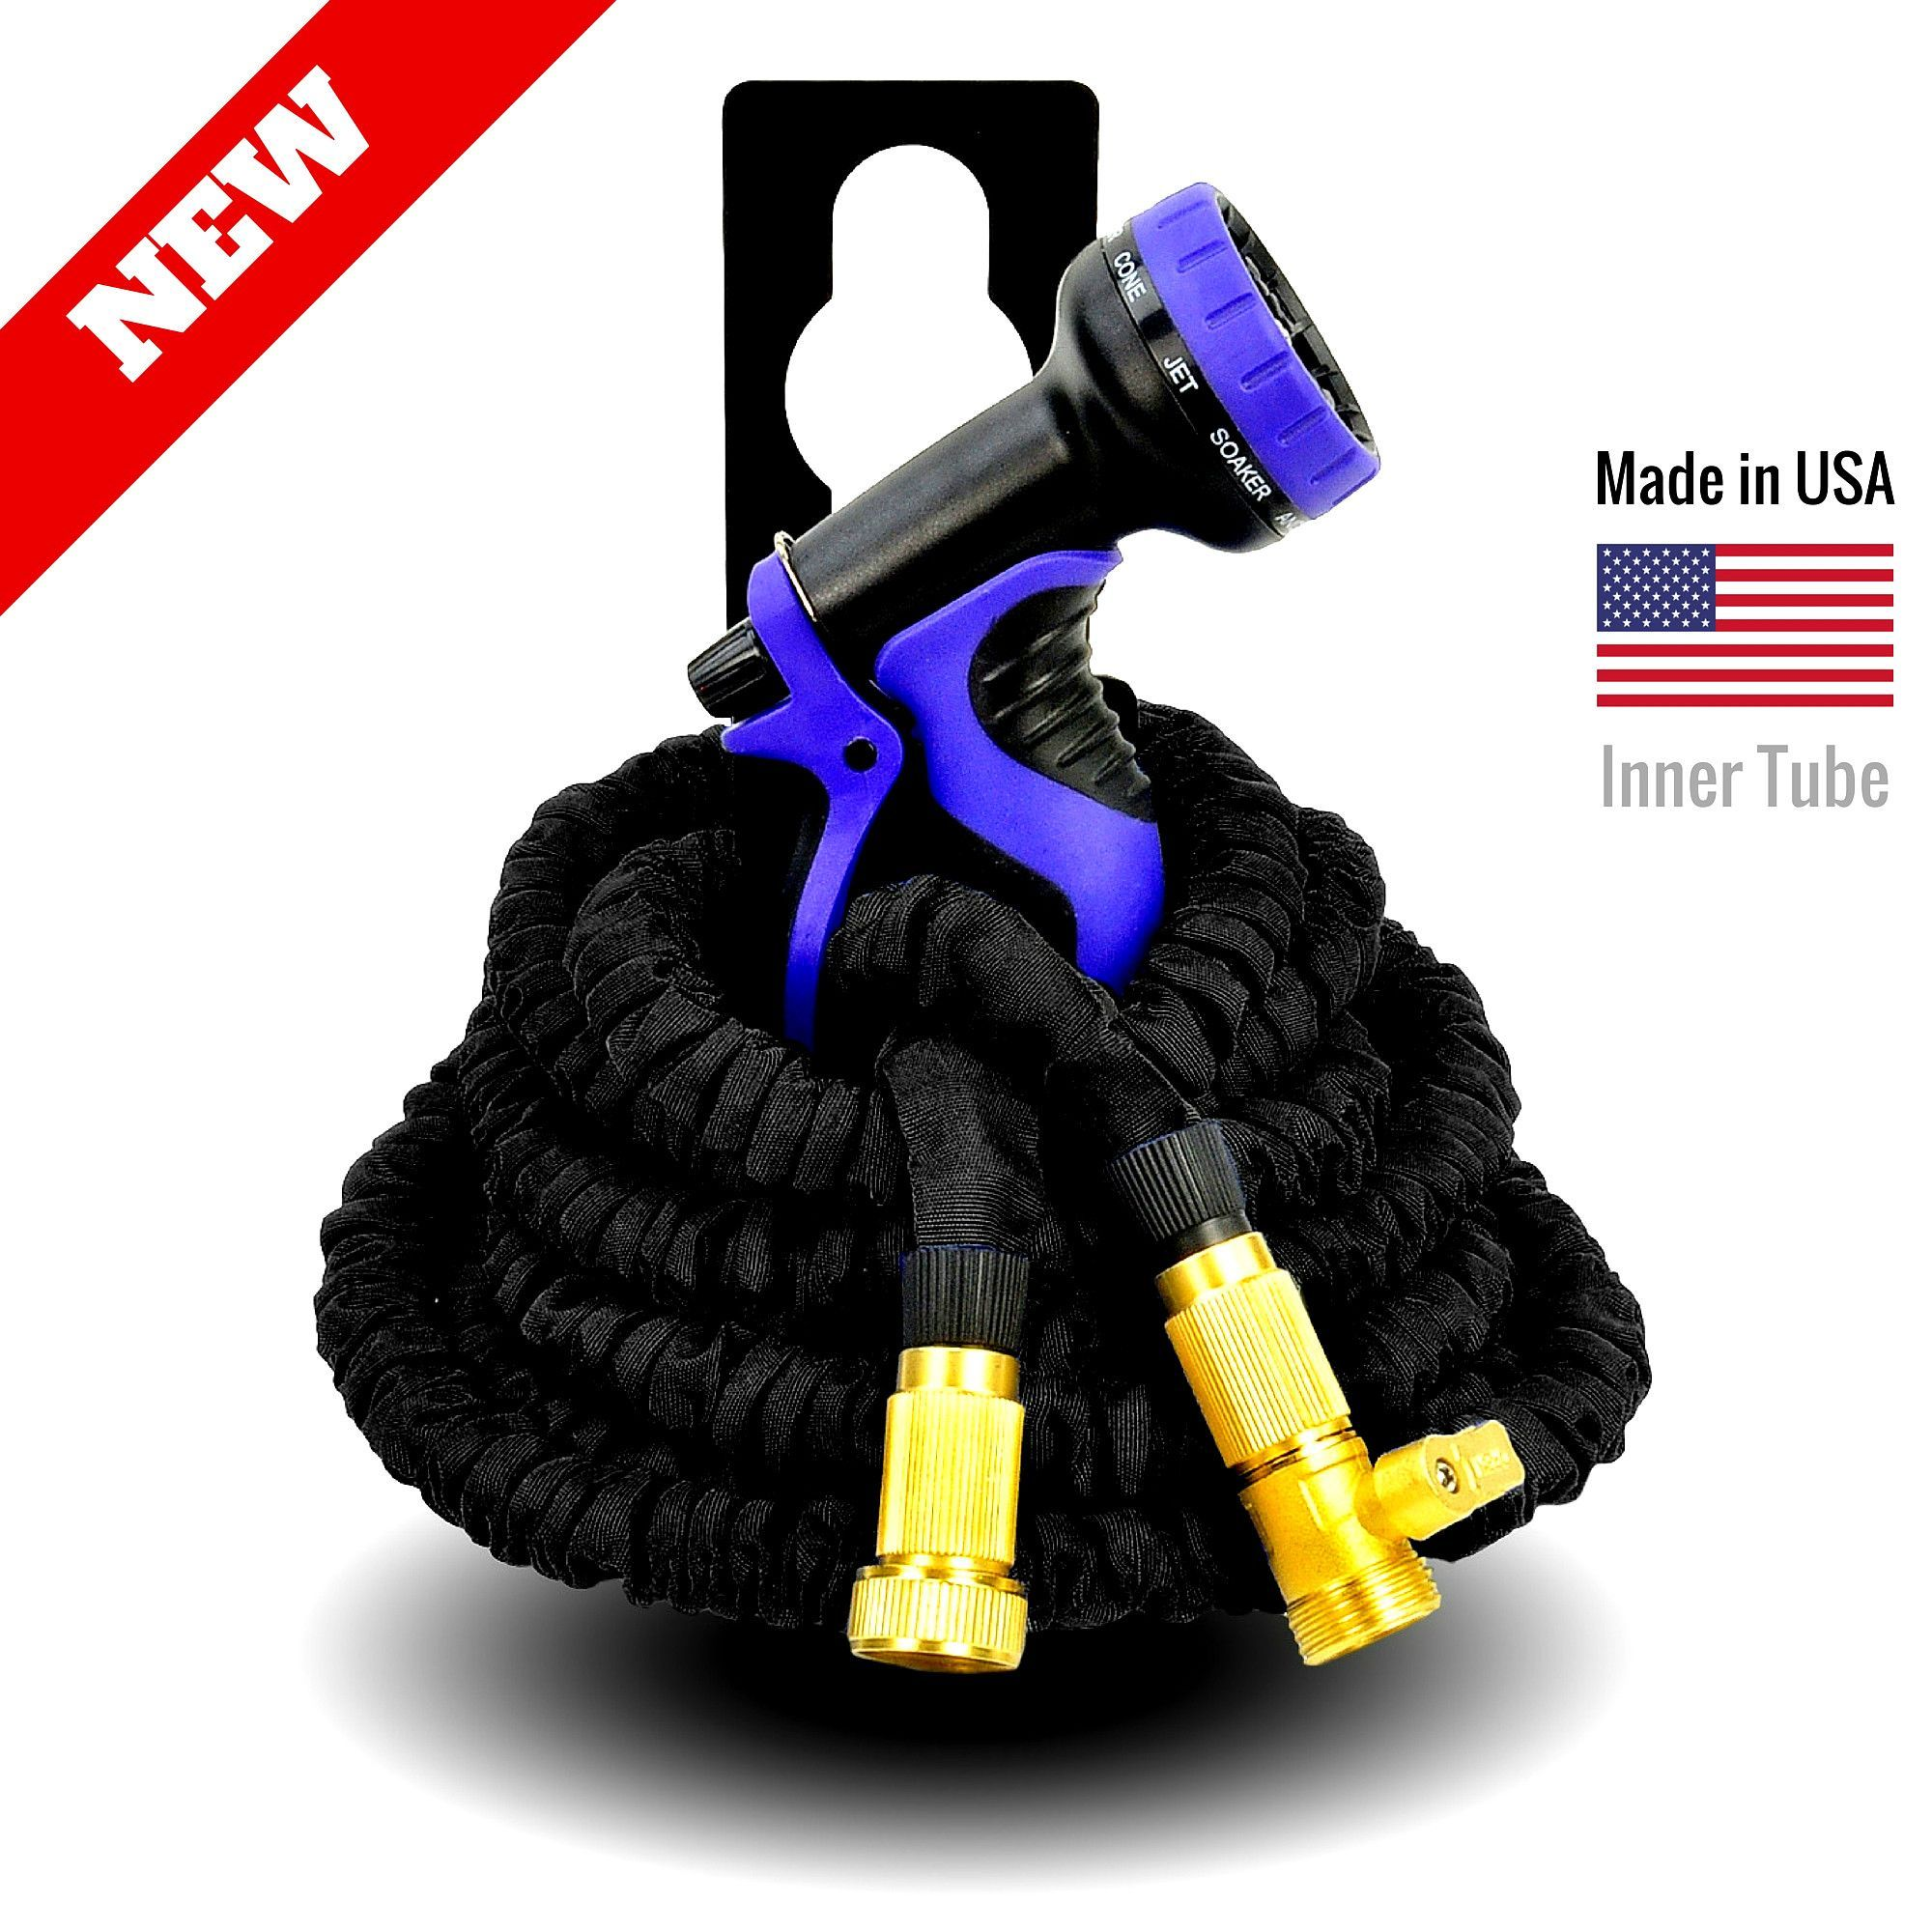 Strongest Expandable Garden Hose Black (With images